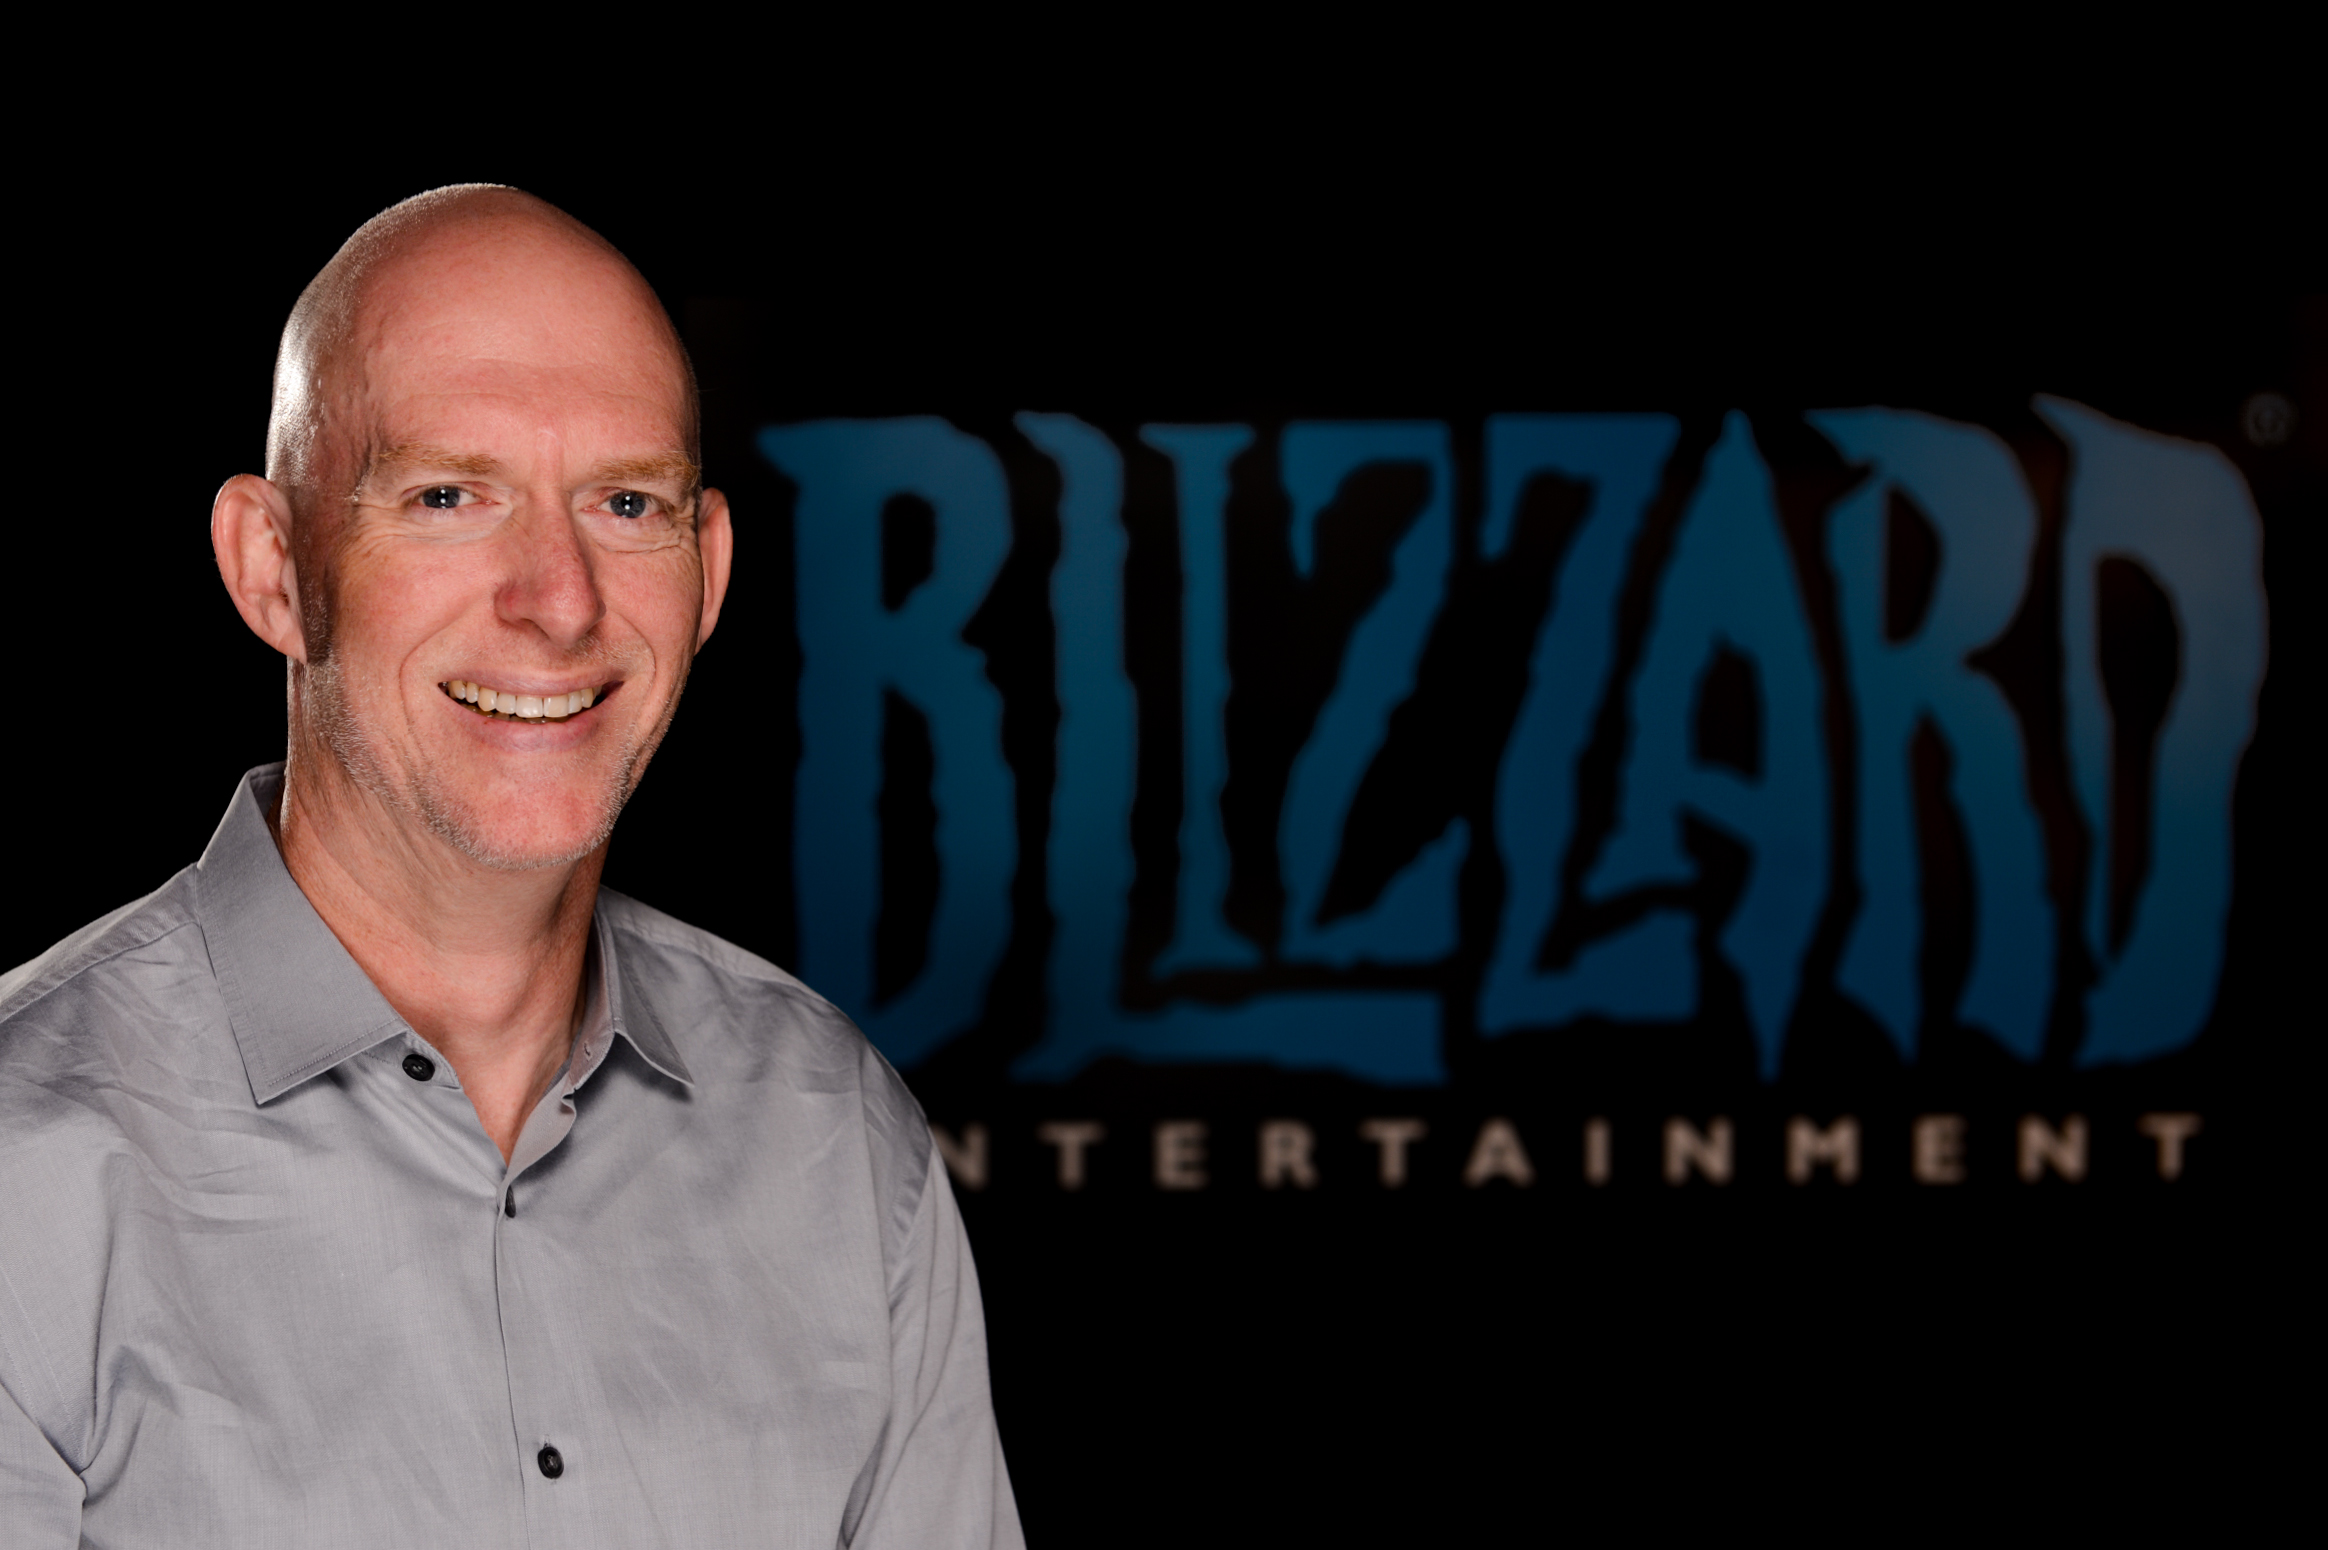 Blizzard co-founder Frank Pearce leaving studio after 28 years